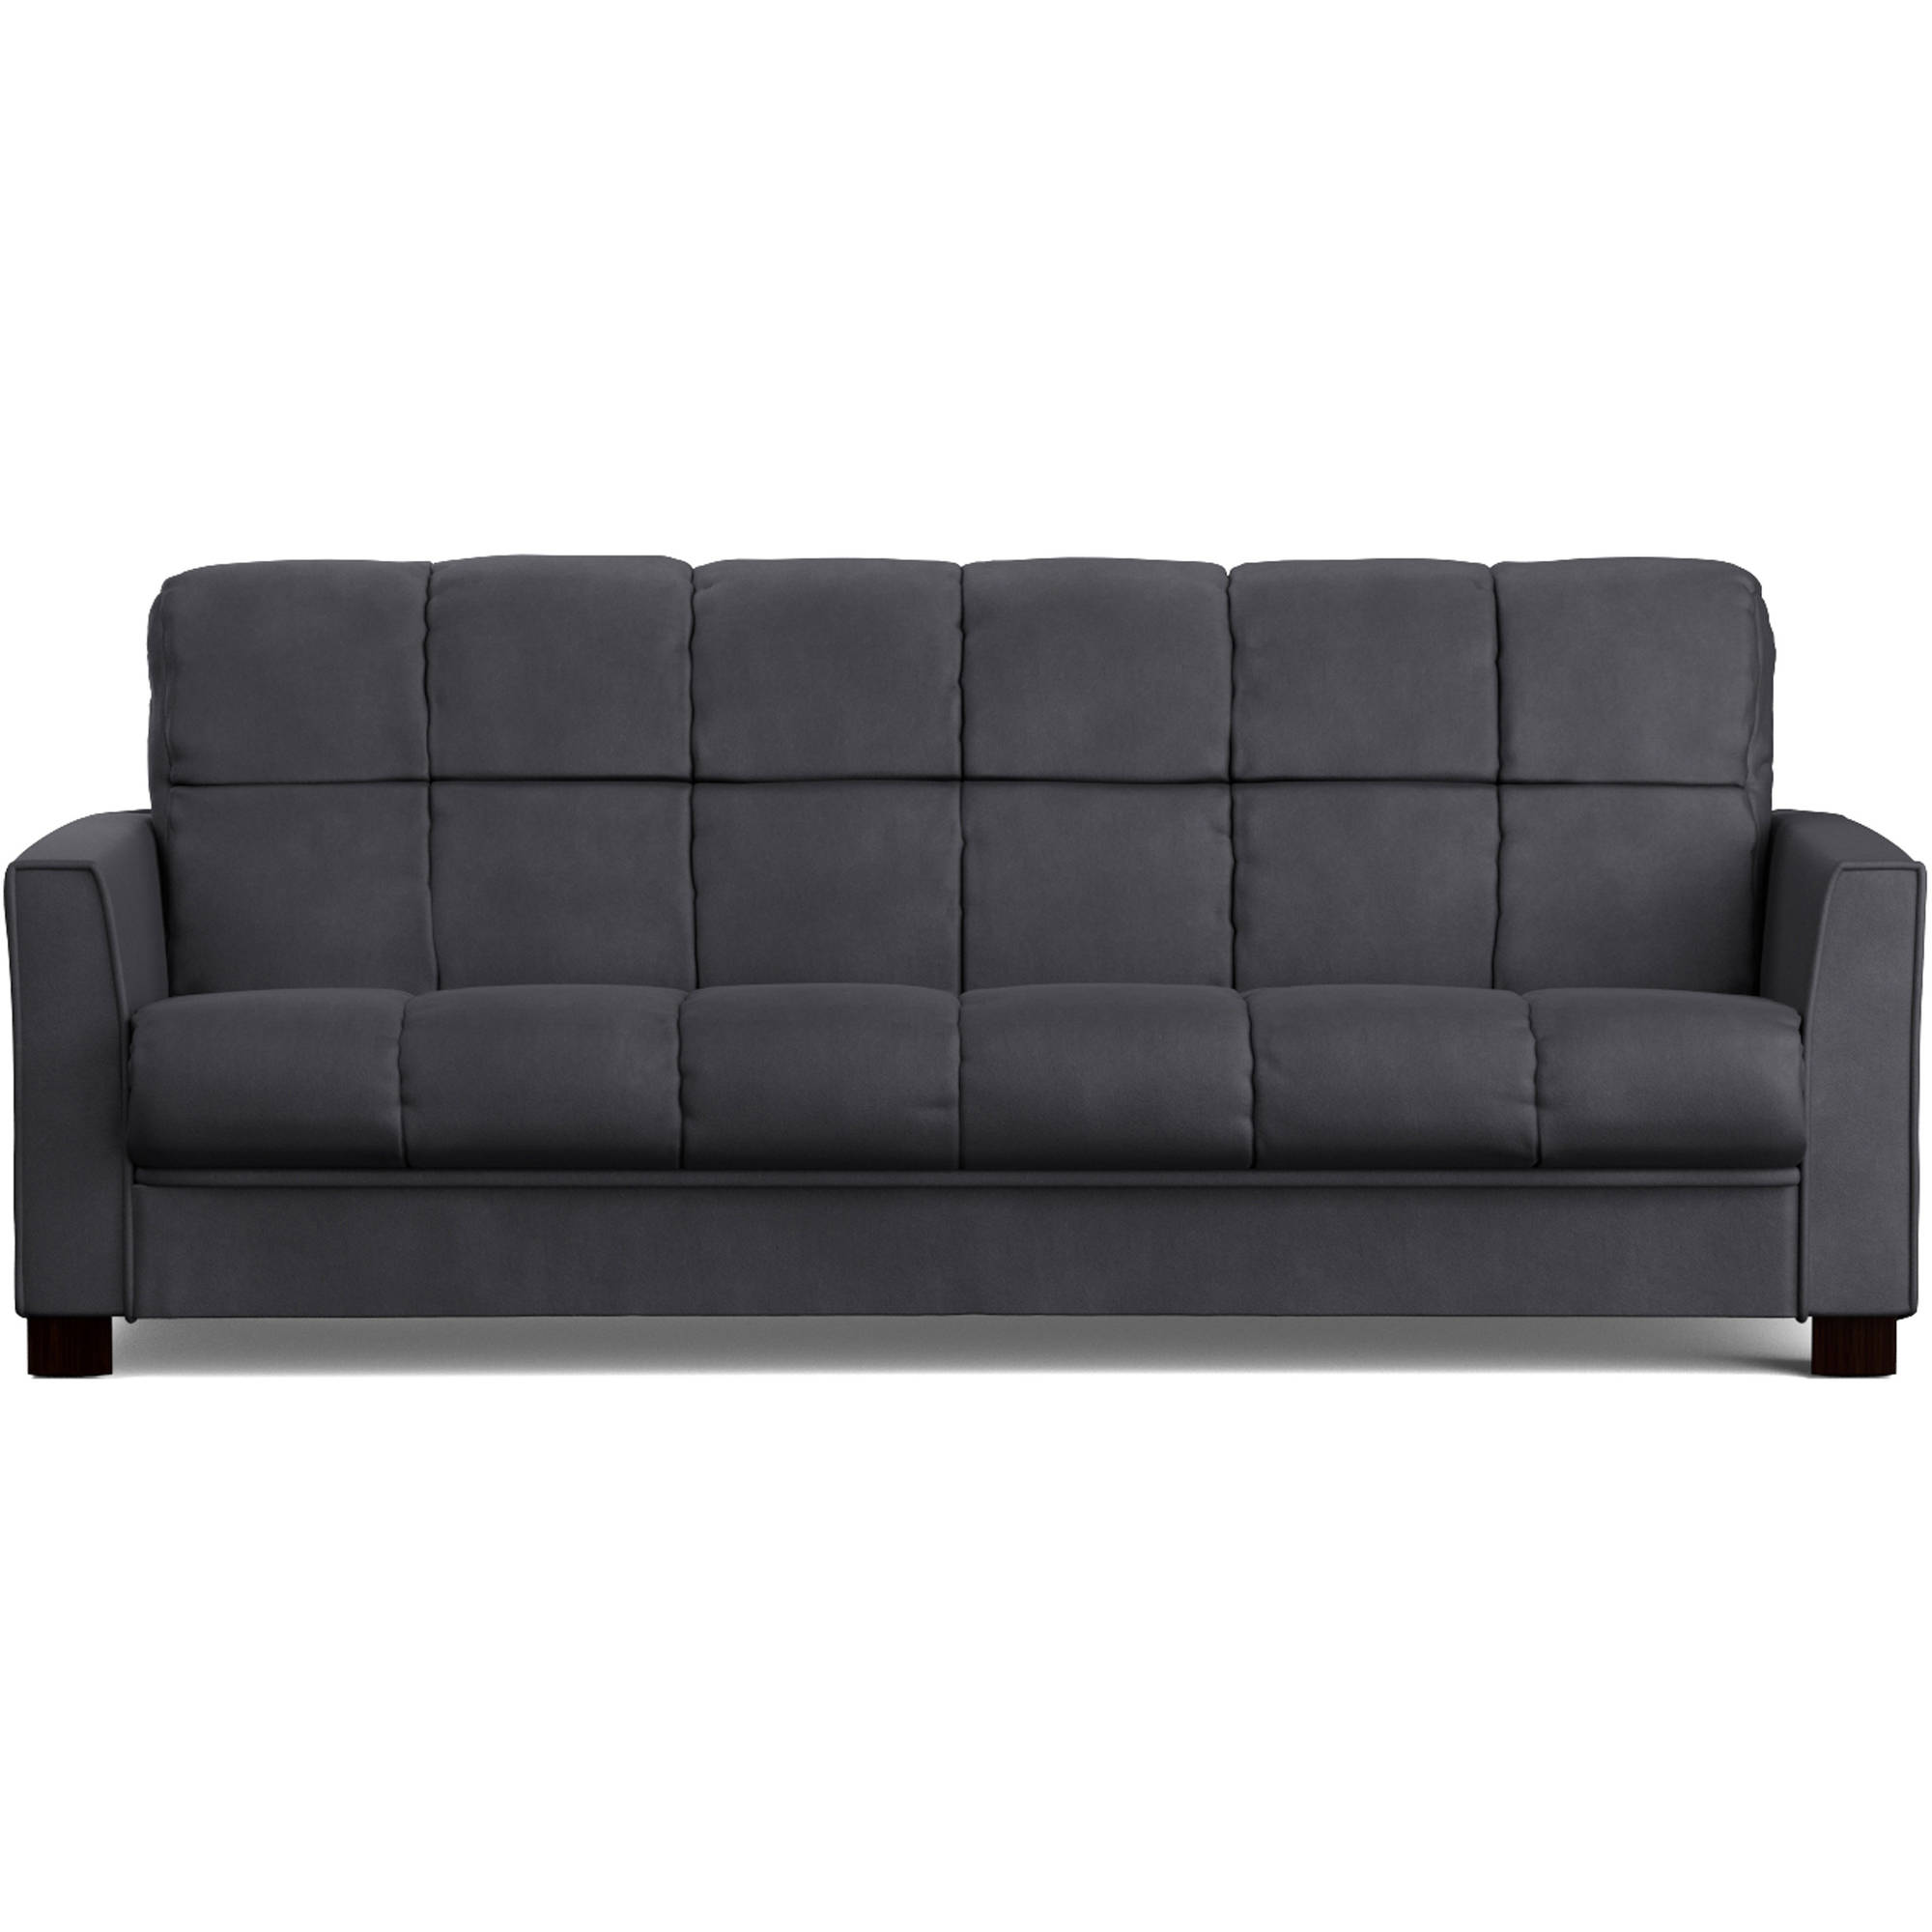 Mainstays Baja Futon Sofa Sleeper Bed Multiple Colors Walmart